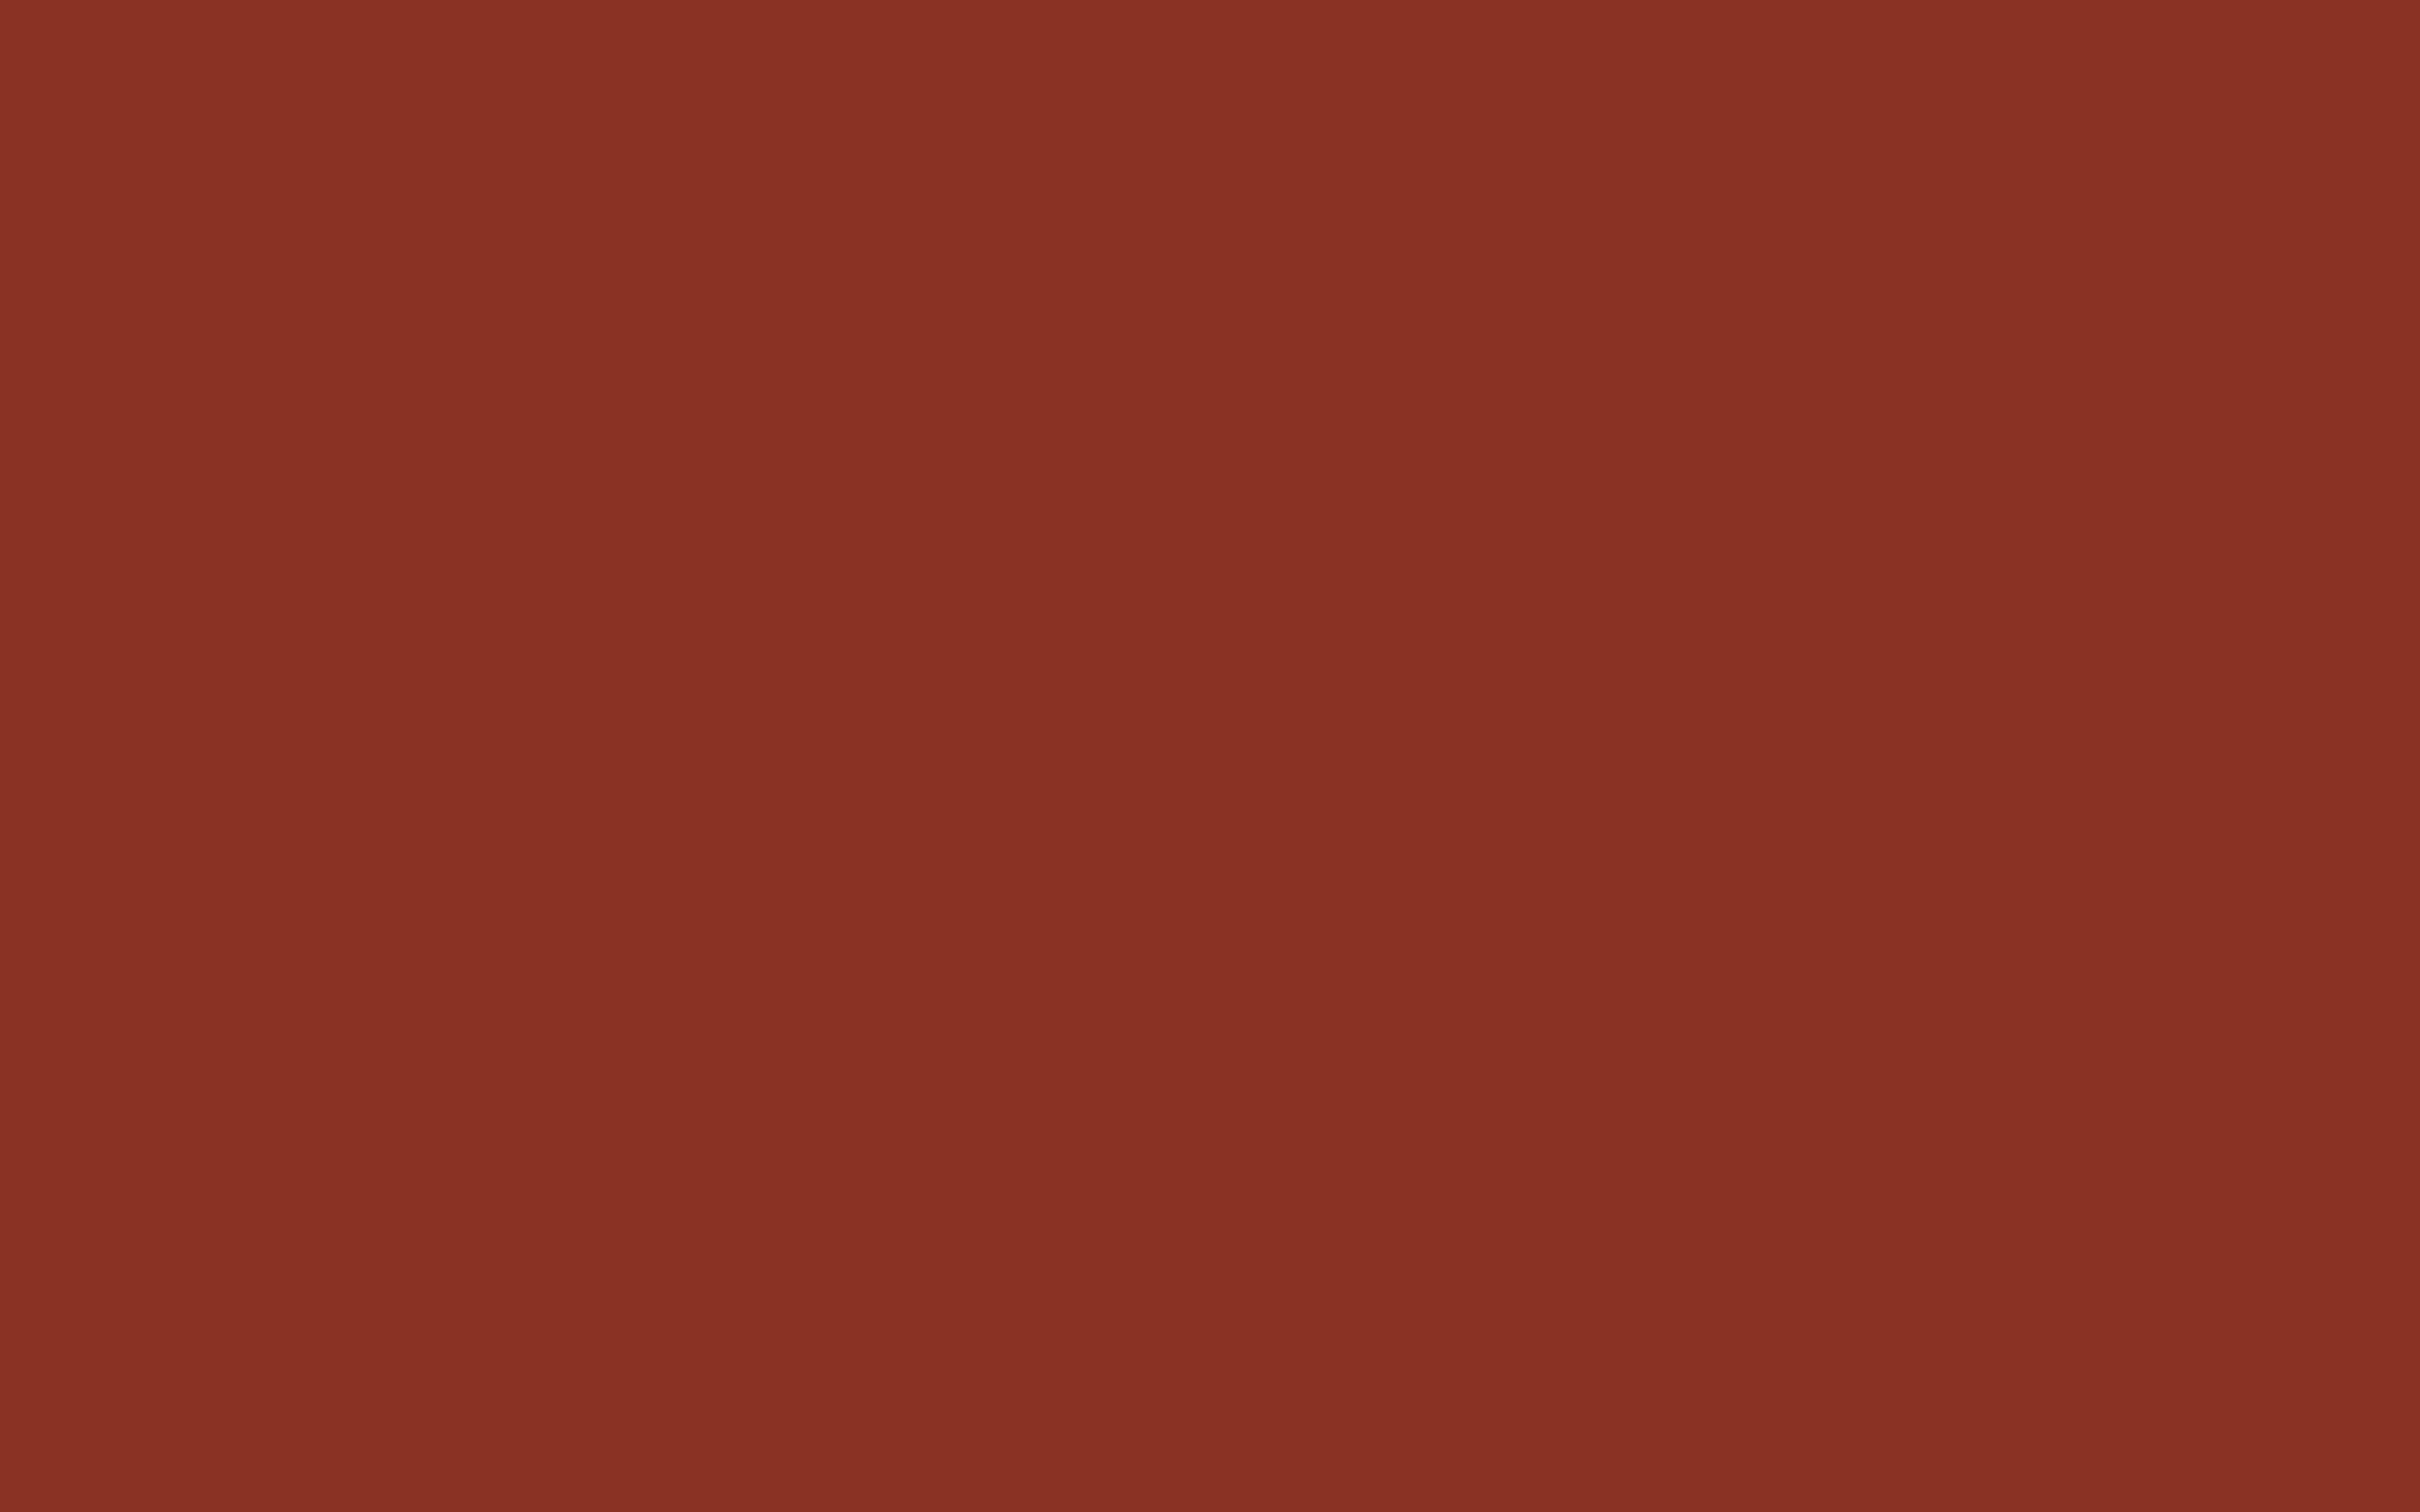 2560x1600 Burnt Umber Solid Color Background